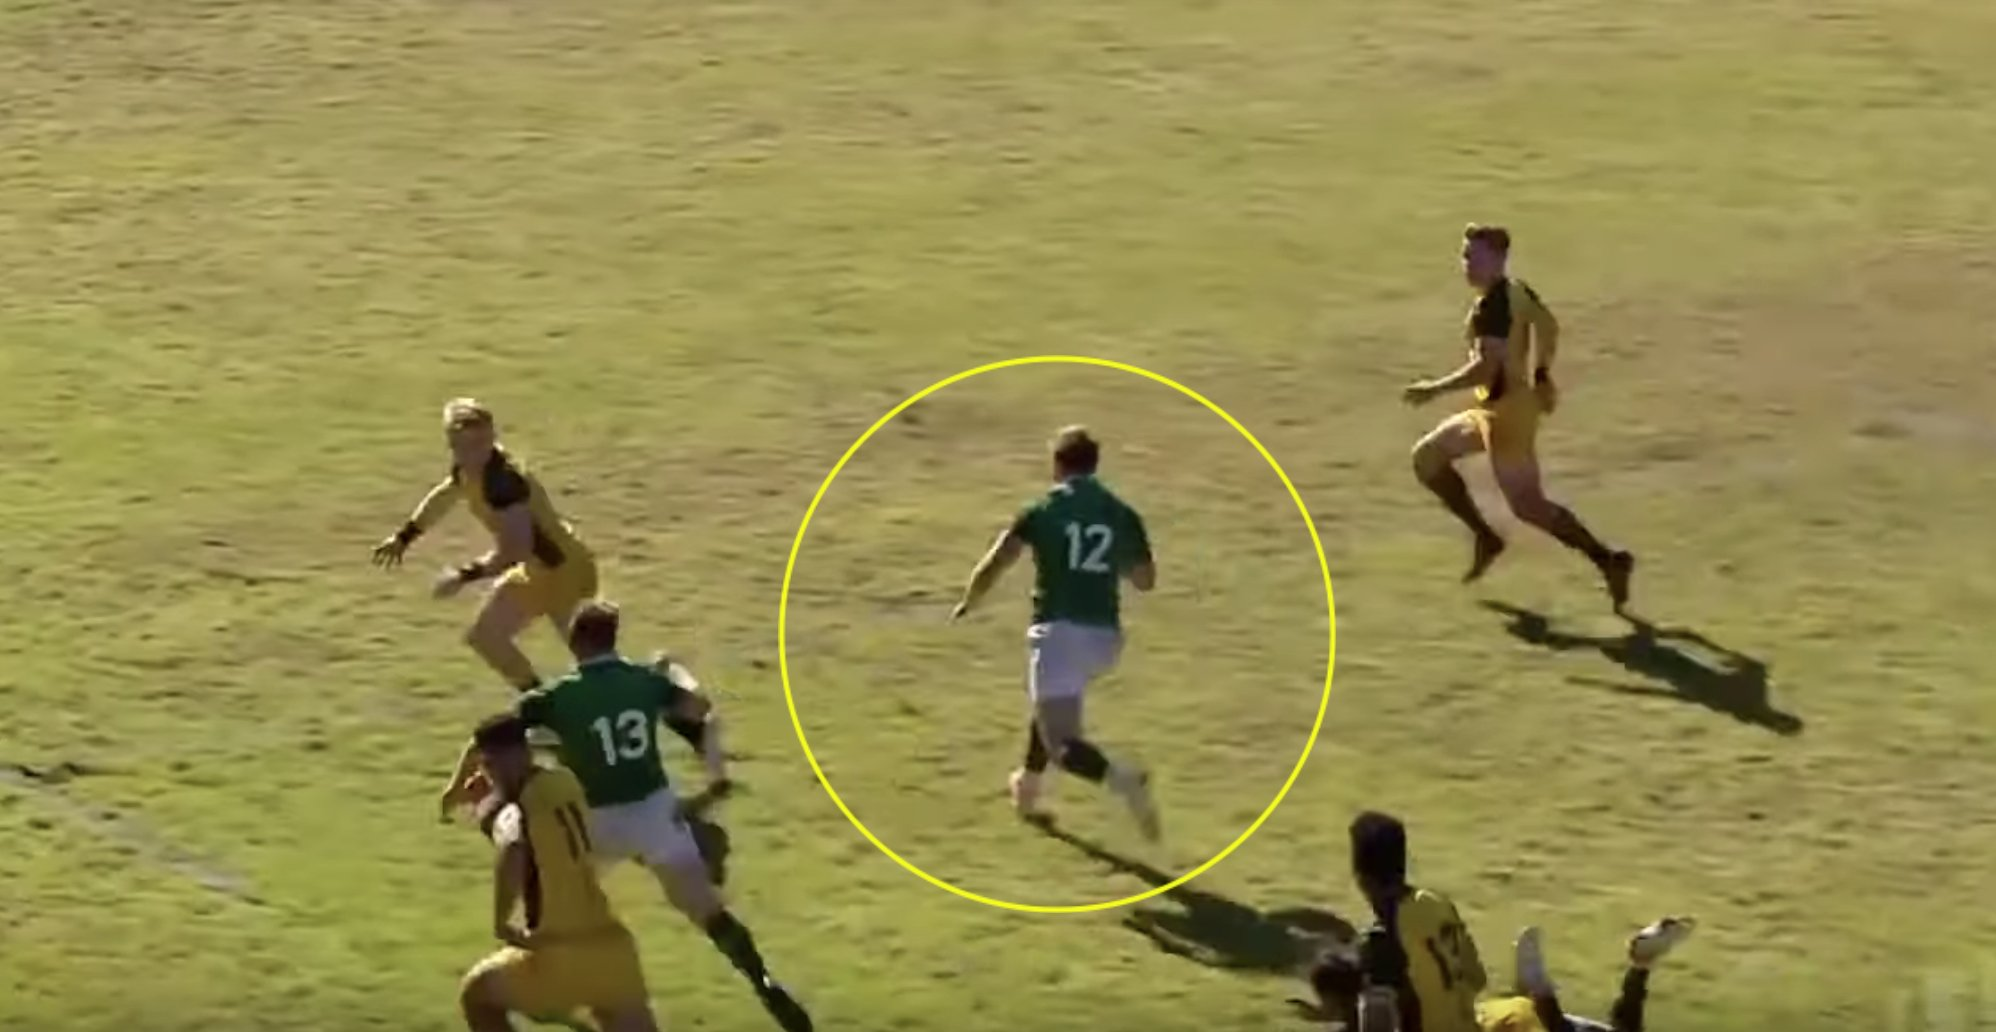 Hype growing around Irish centre as new highlight video drops on Stewart Moore